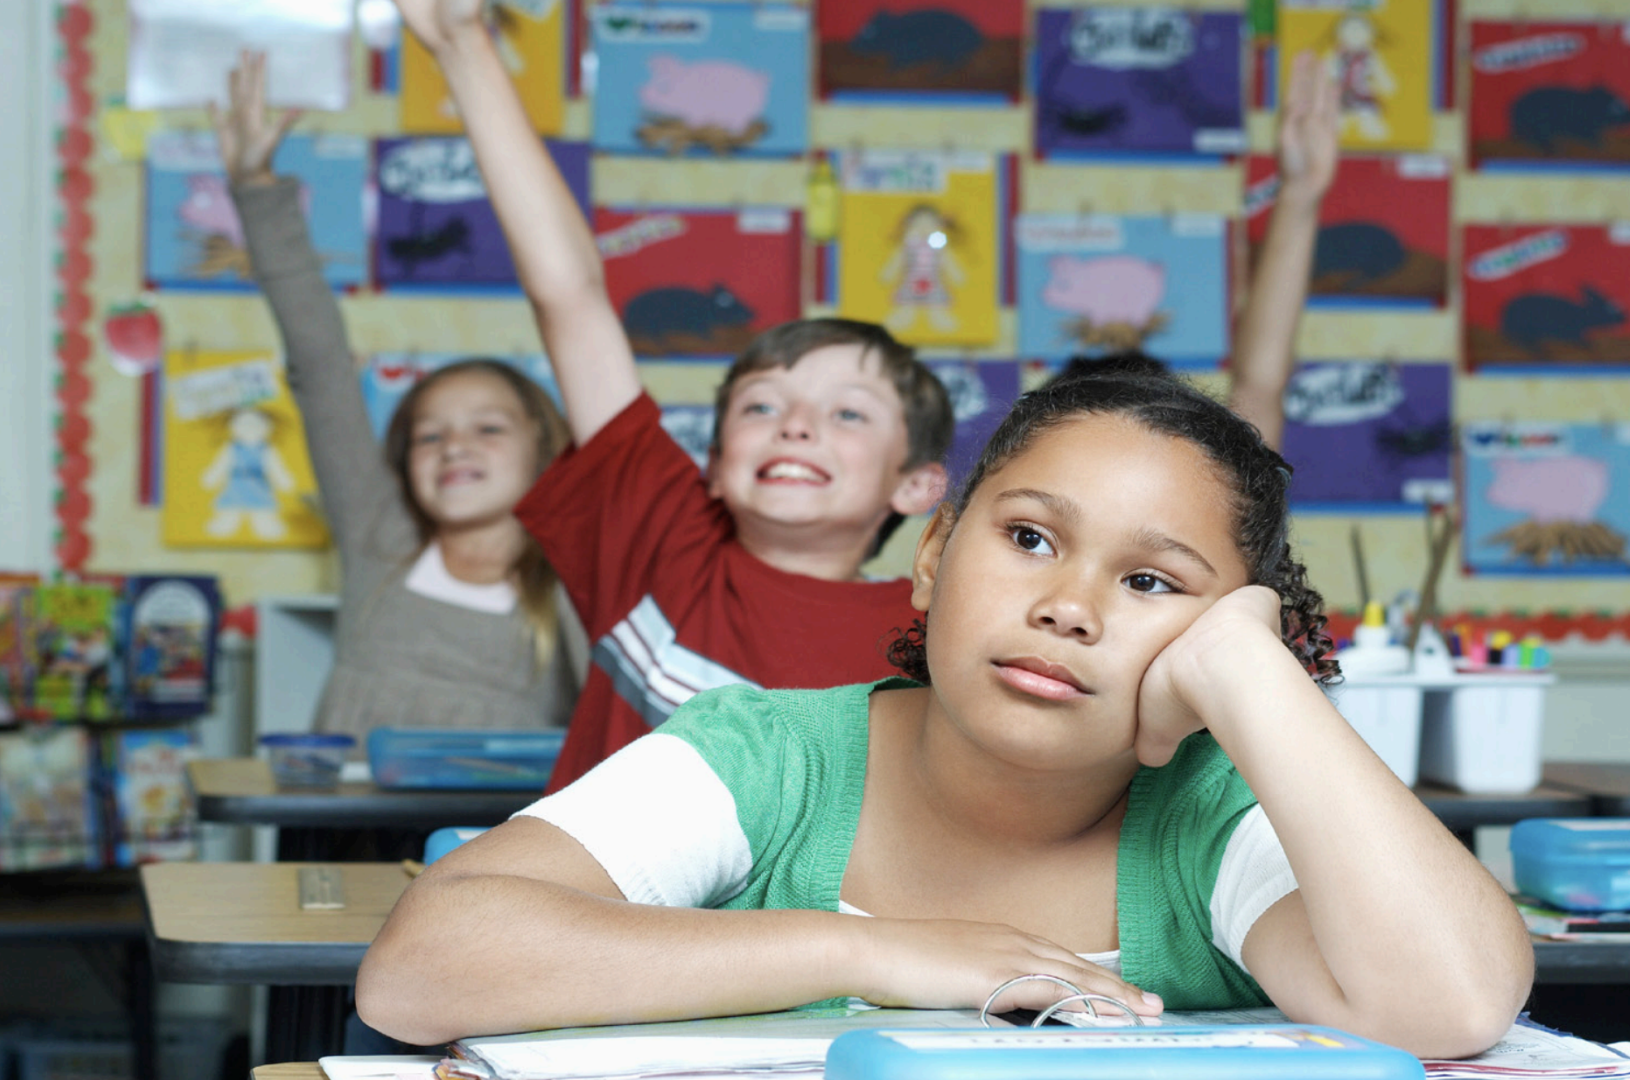 Inattentive ADHD EXPLAINED -